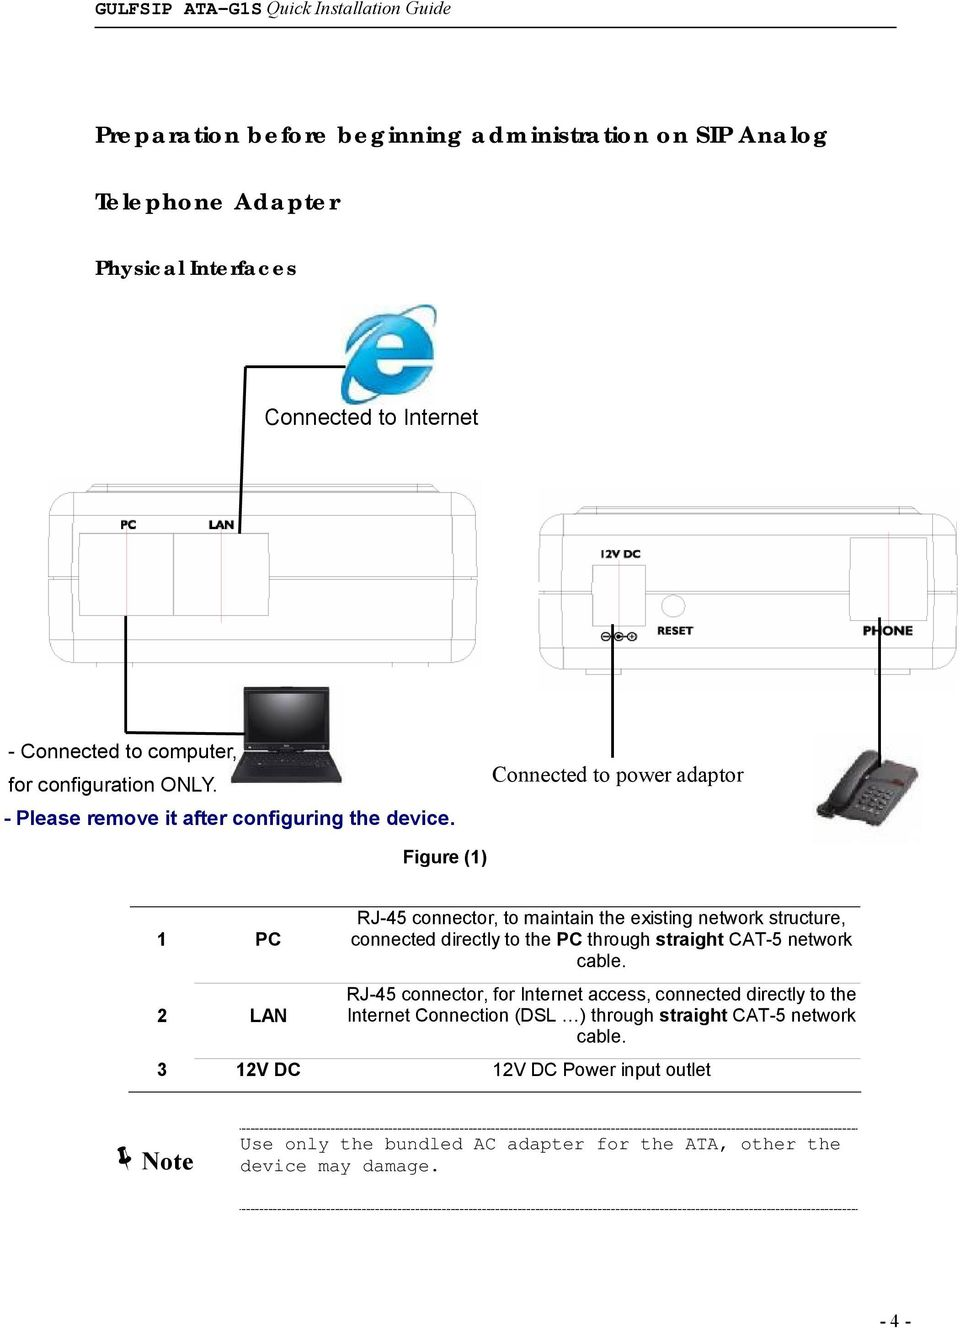 Connected to power adaptor Figure (1) 1 PC 2 LAN RJ-45 connector, to maintain the existing network structure, connected directly to the PC through straight